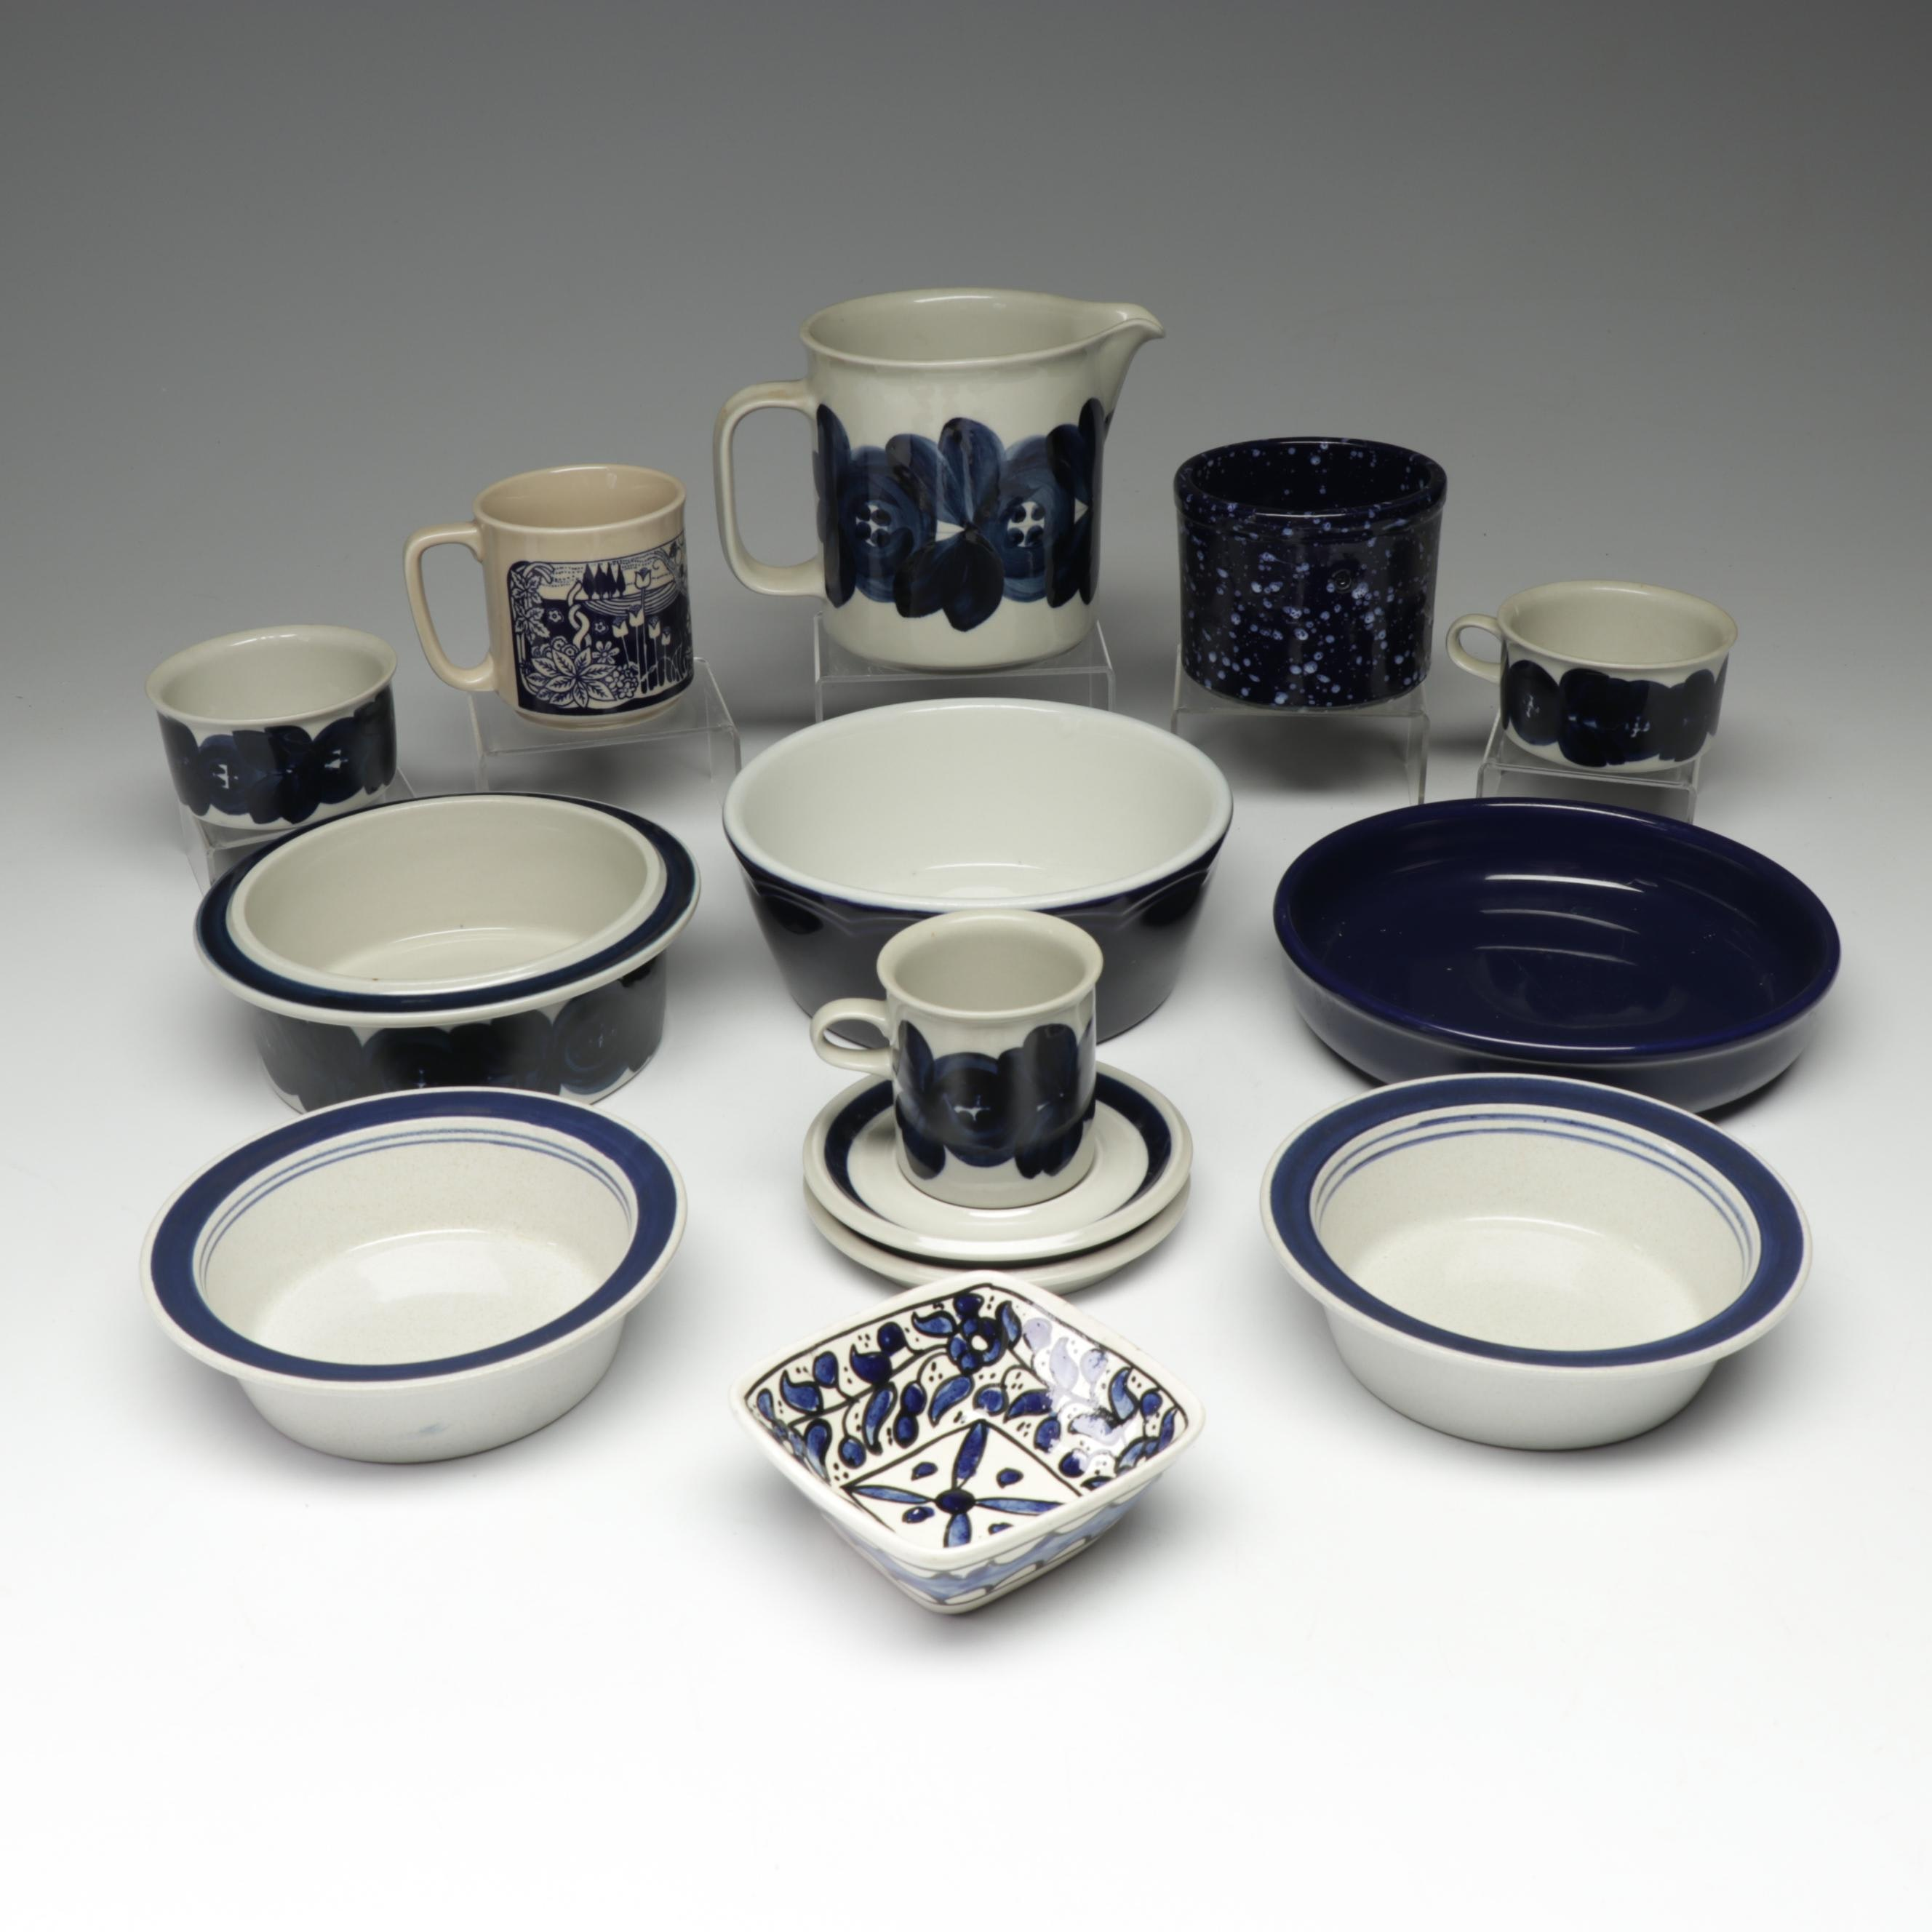 Mid-Century Modern Ceramic Tableware with Hall, Arabia and Waechtersbach